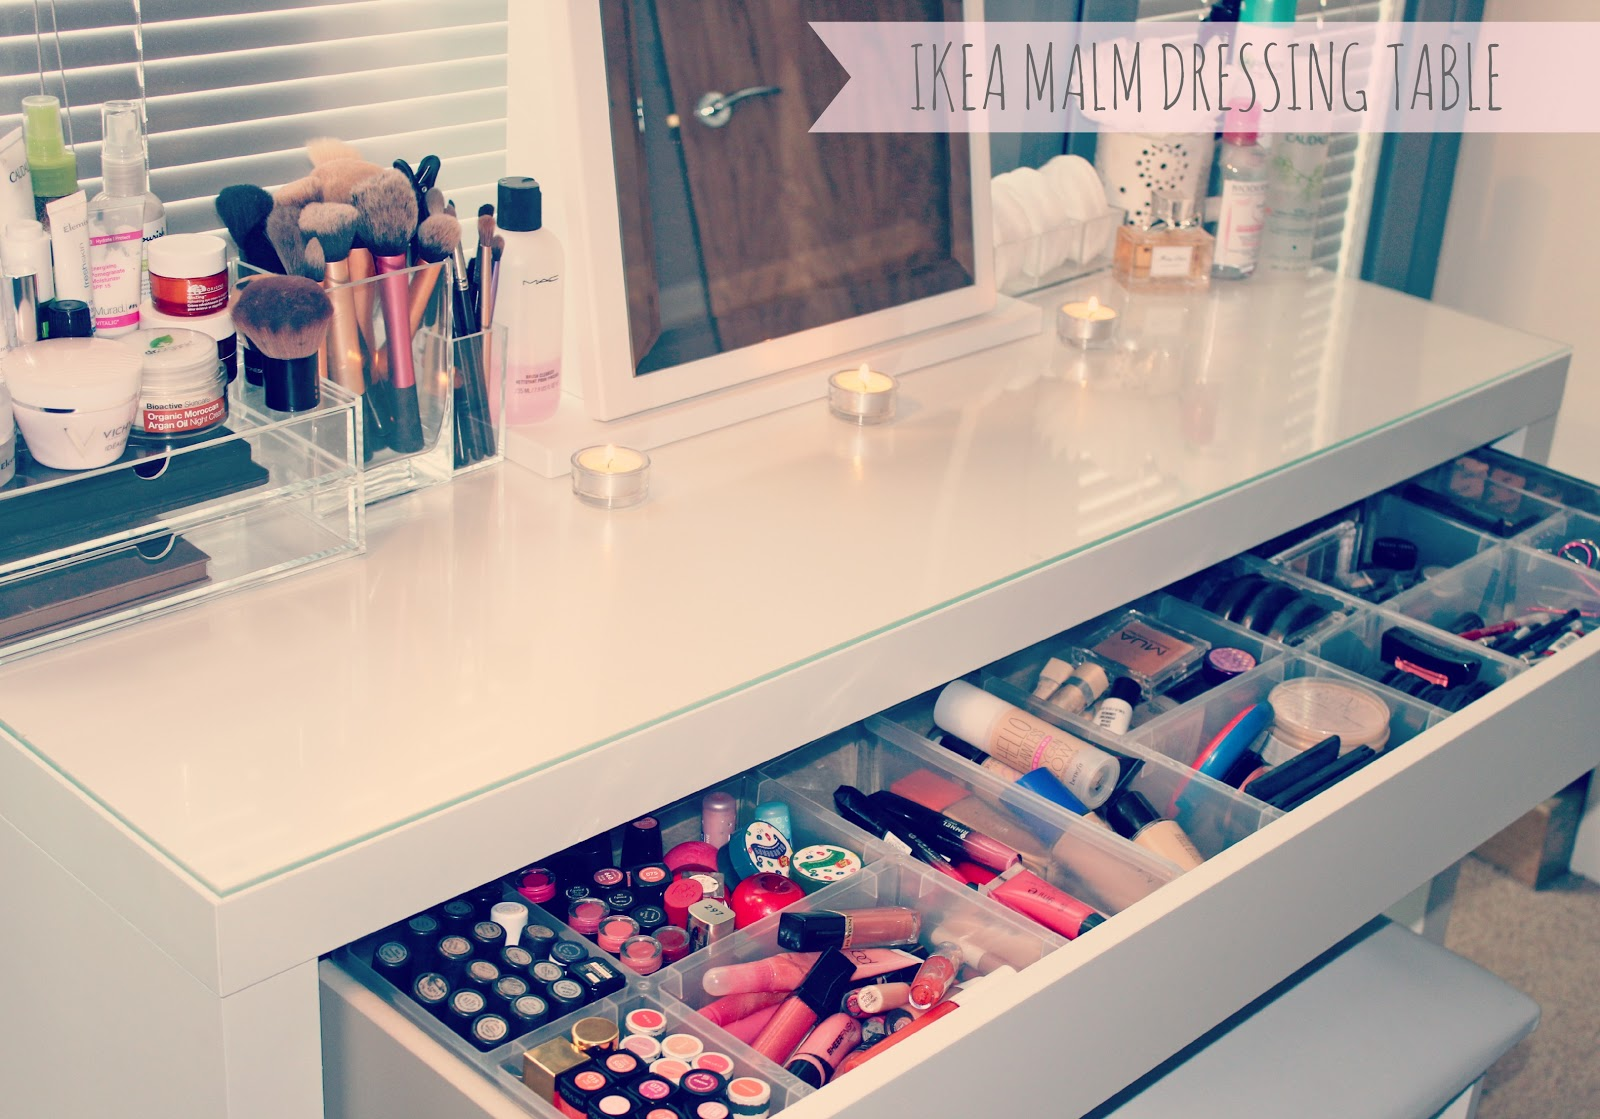 My Makeup Storage Ikea Malm Dressing